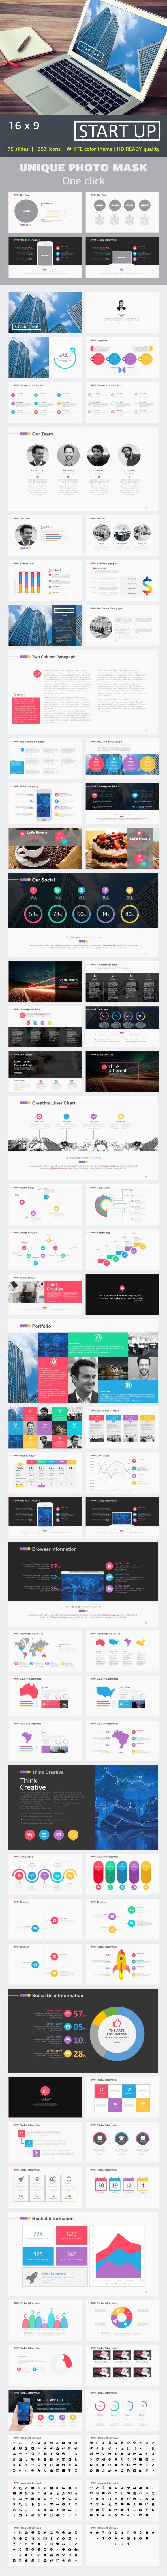 Start Up PowerPoint Template. Download here: http://graphicriver.net/item/start-up-powerpoint-template/16429069?ref=ksioks